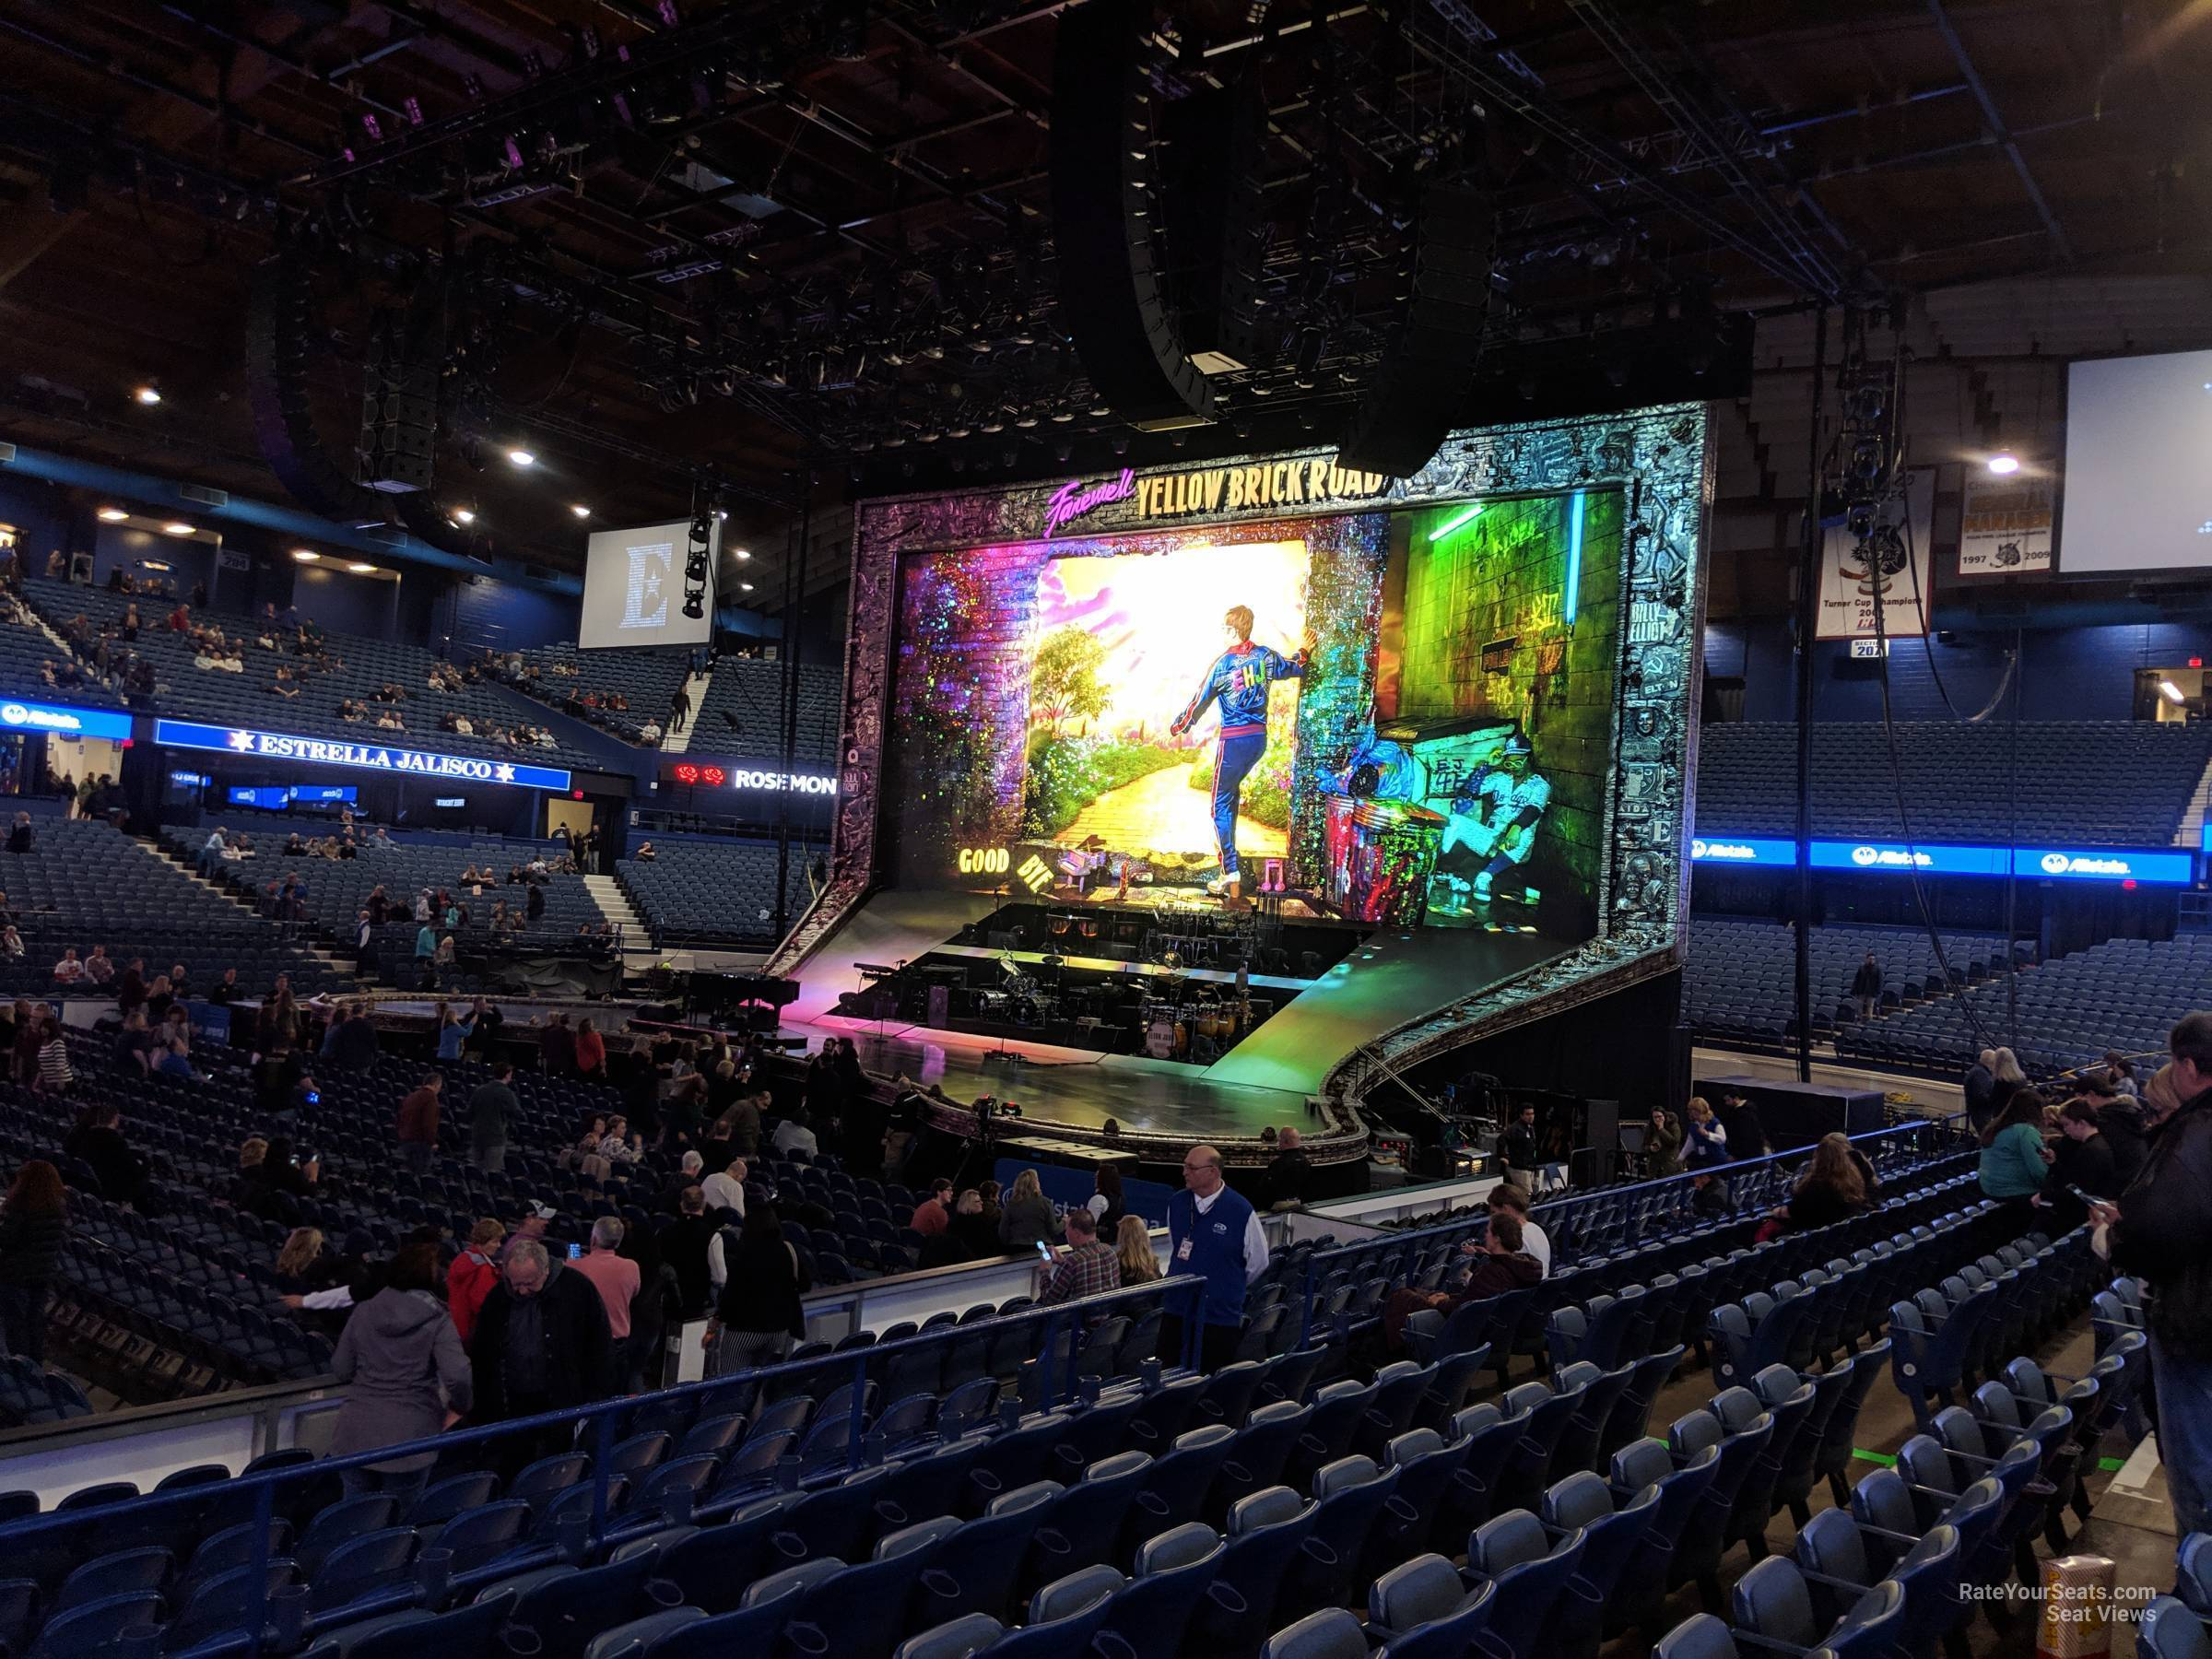 Allstate Arena Section 111 Concert Seating - RateYourSeats.com